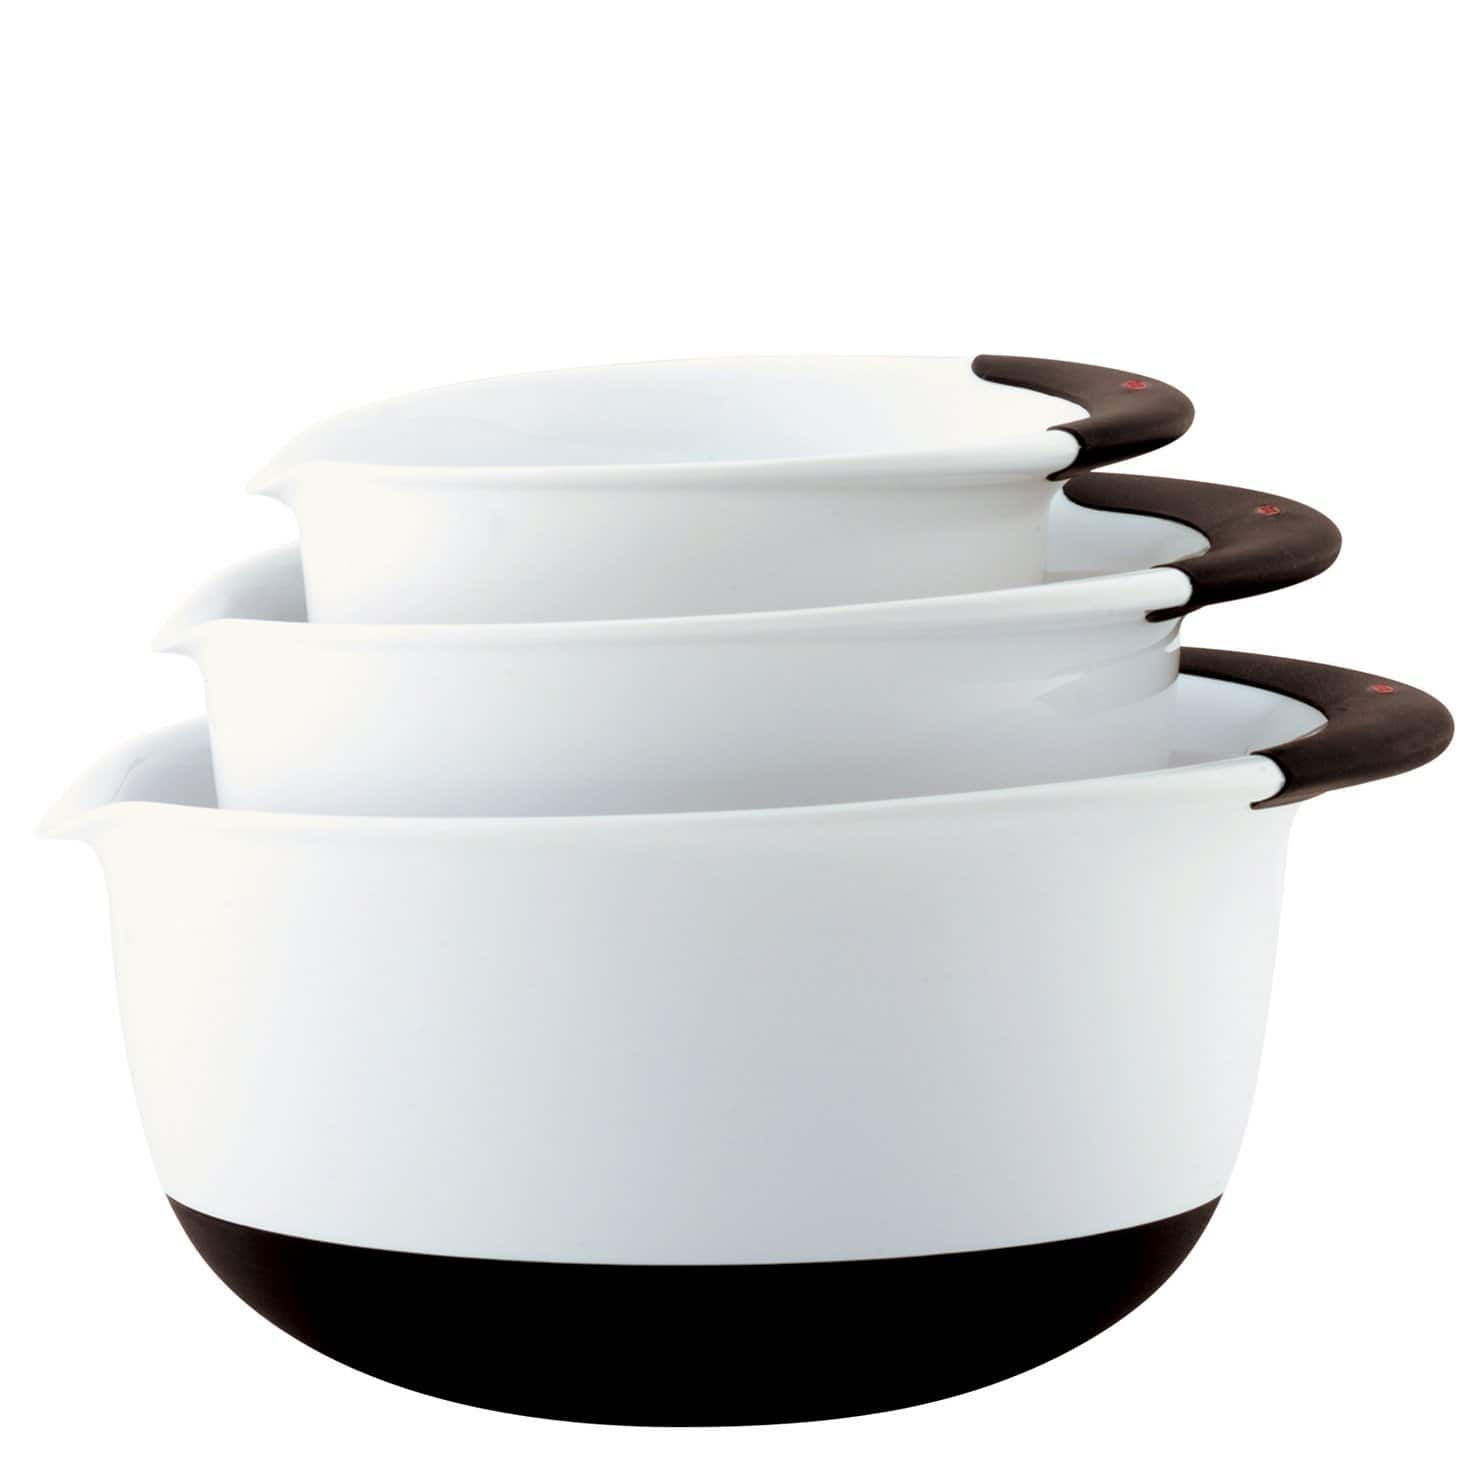 OXO Good Grips Mixing Bowl Set with Black Handles, 3-Piece $10.99 @ Amazon